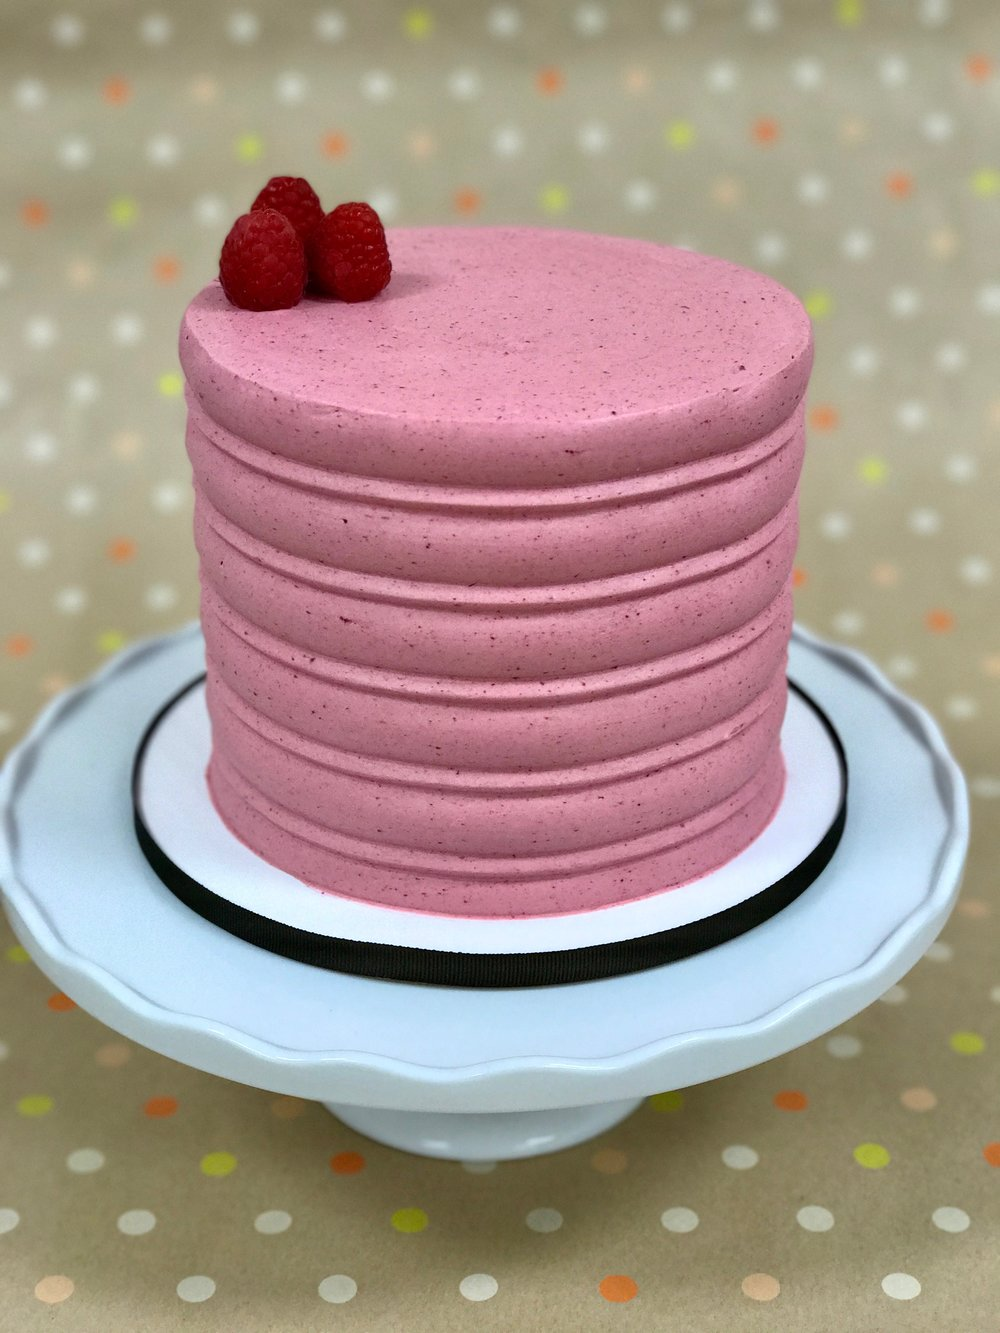 Lemon Raspberry - Cake: Lemon ButtercreamFilling: Raspberry Swiss Meringue ButtercreamFrosting: Raspberry Swiss Meringue Buttercream and Fresh Raspberries